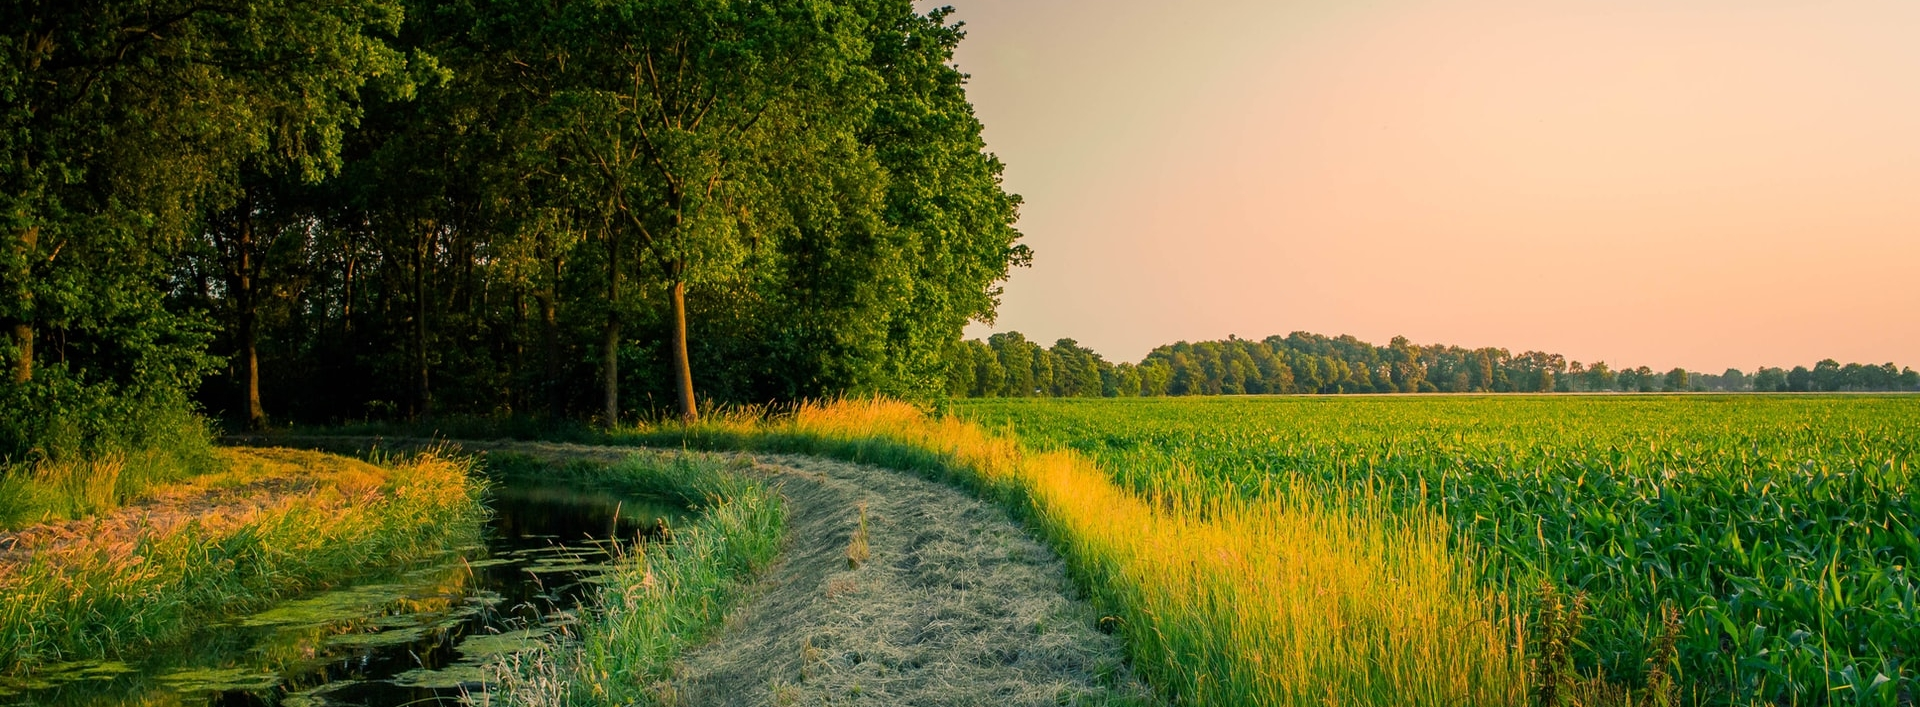 A dirt road next to a field at sunset